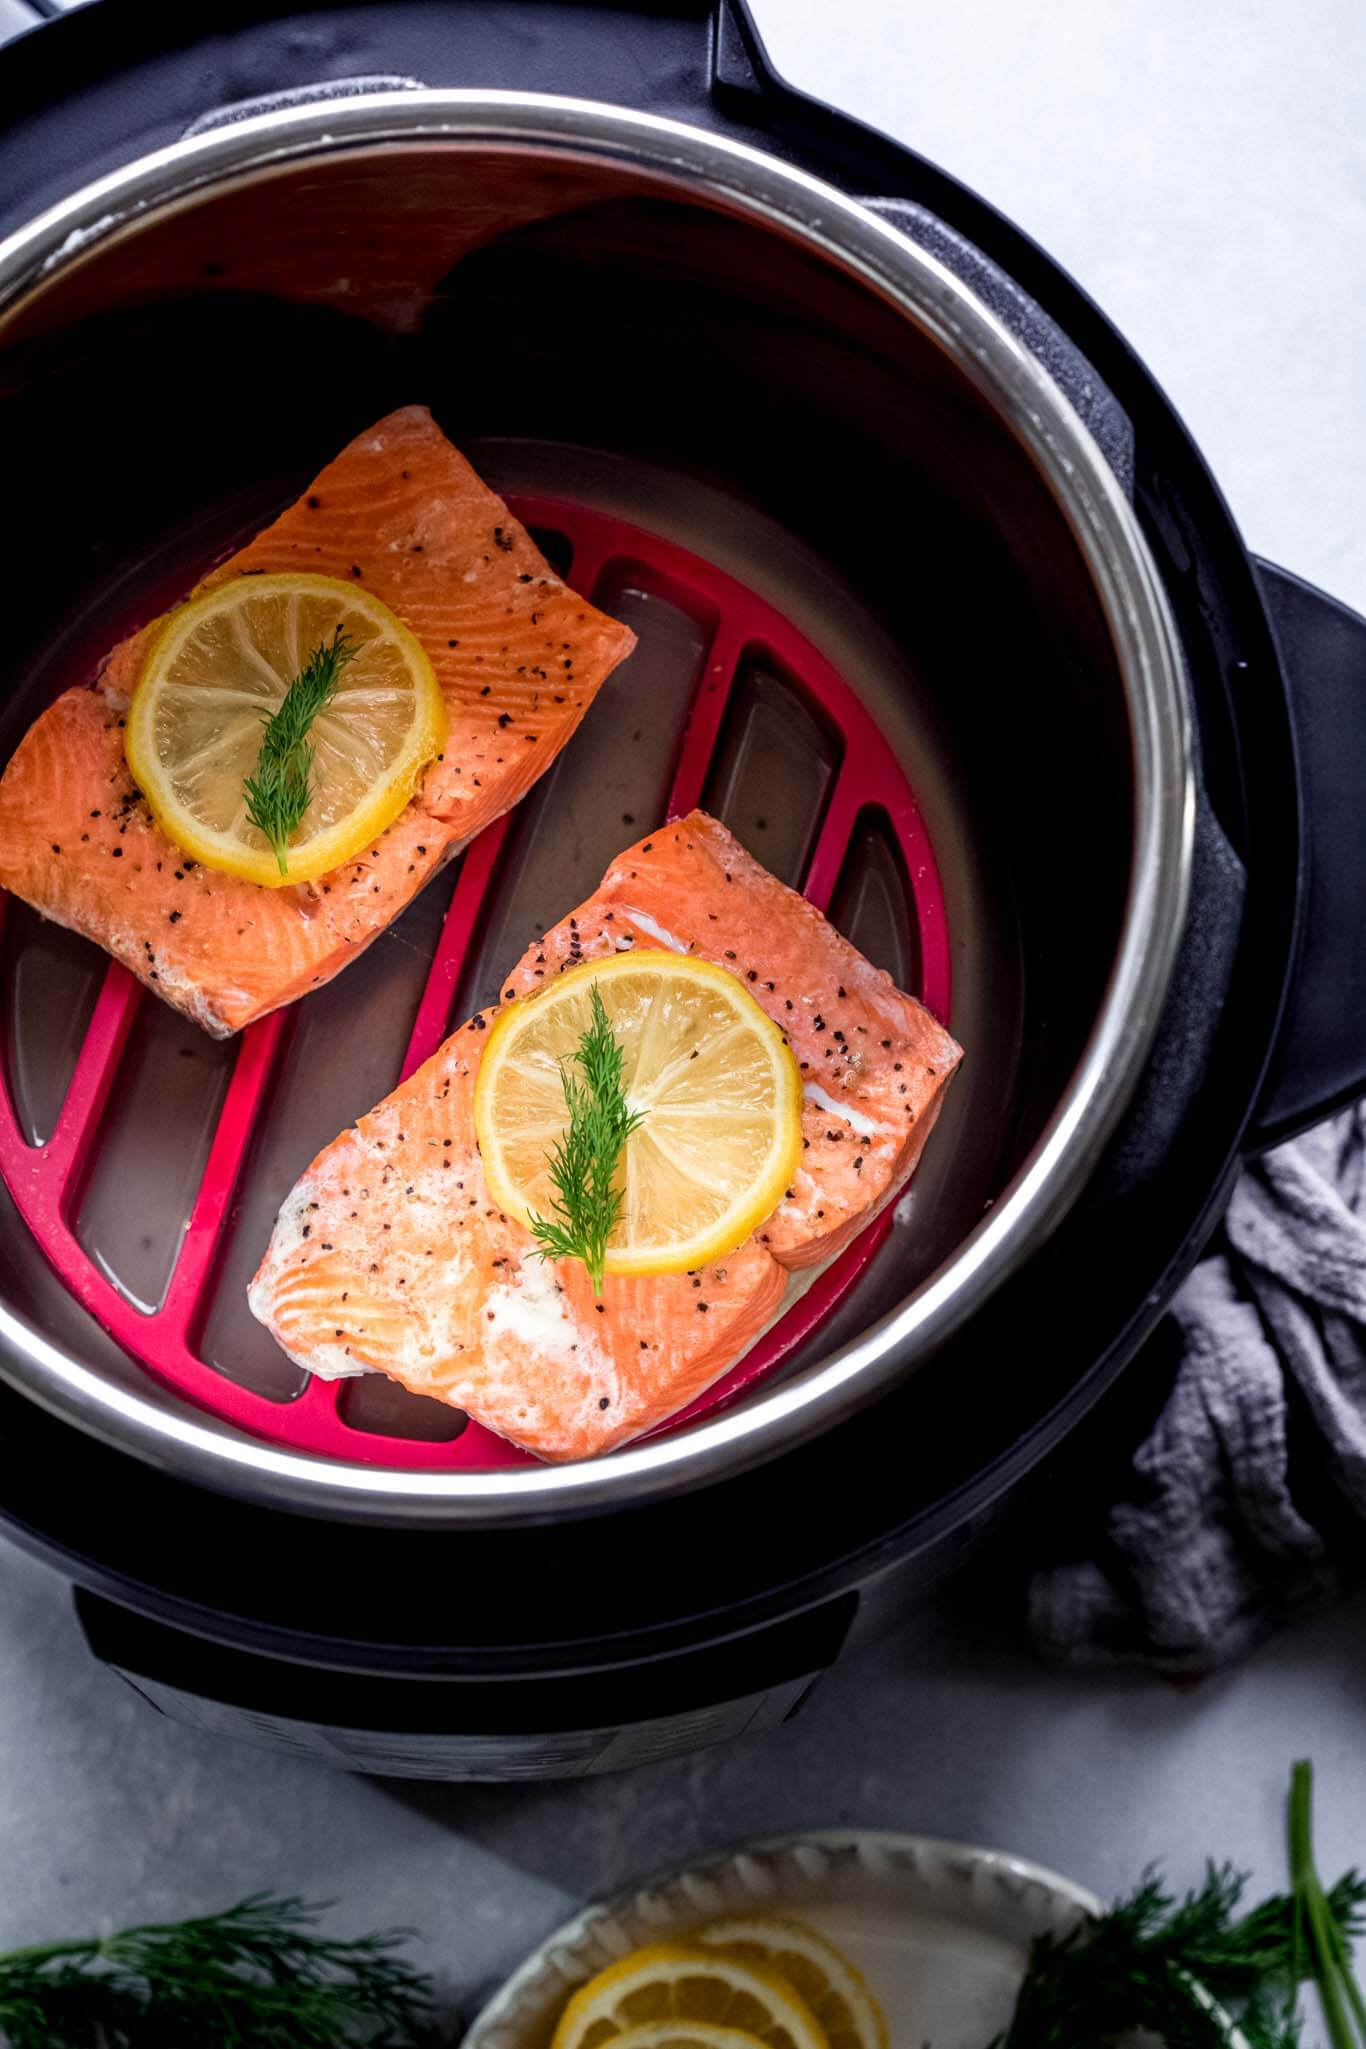 Salmon in instant pot after cooking.